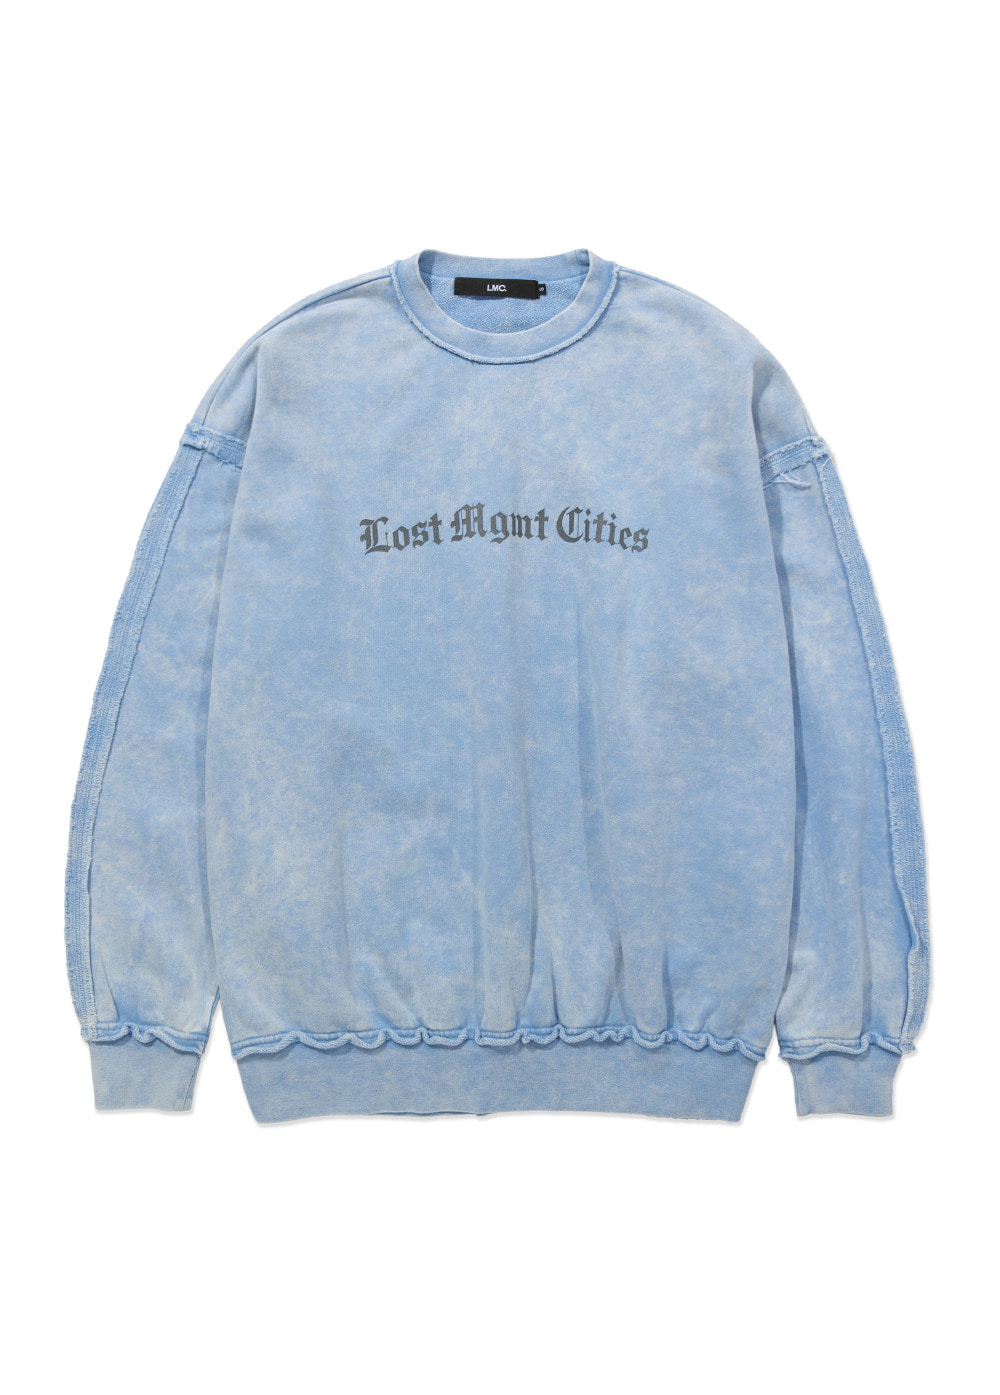 LMC OVERDYED RAW EDGE OVERSIZED SWEATSHIRT lt. blue